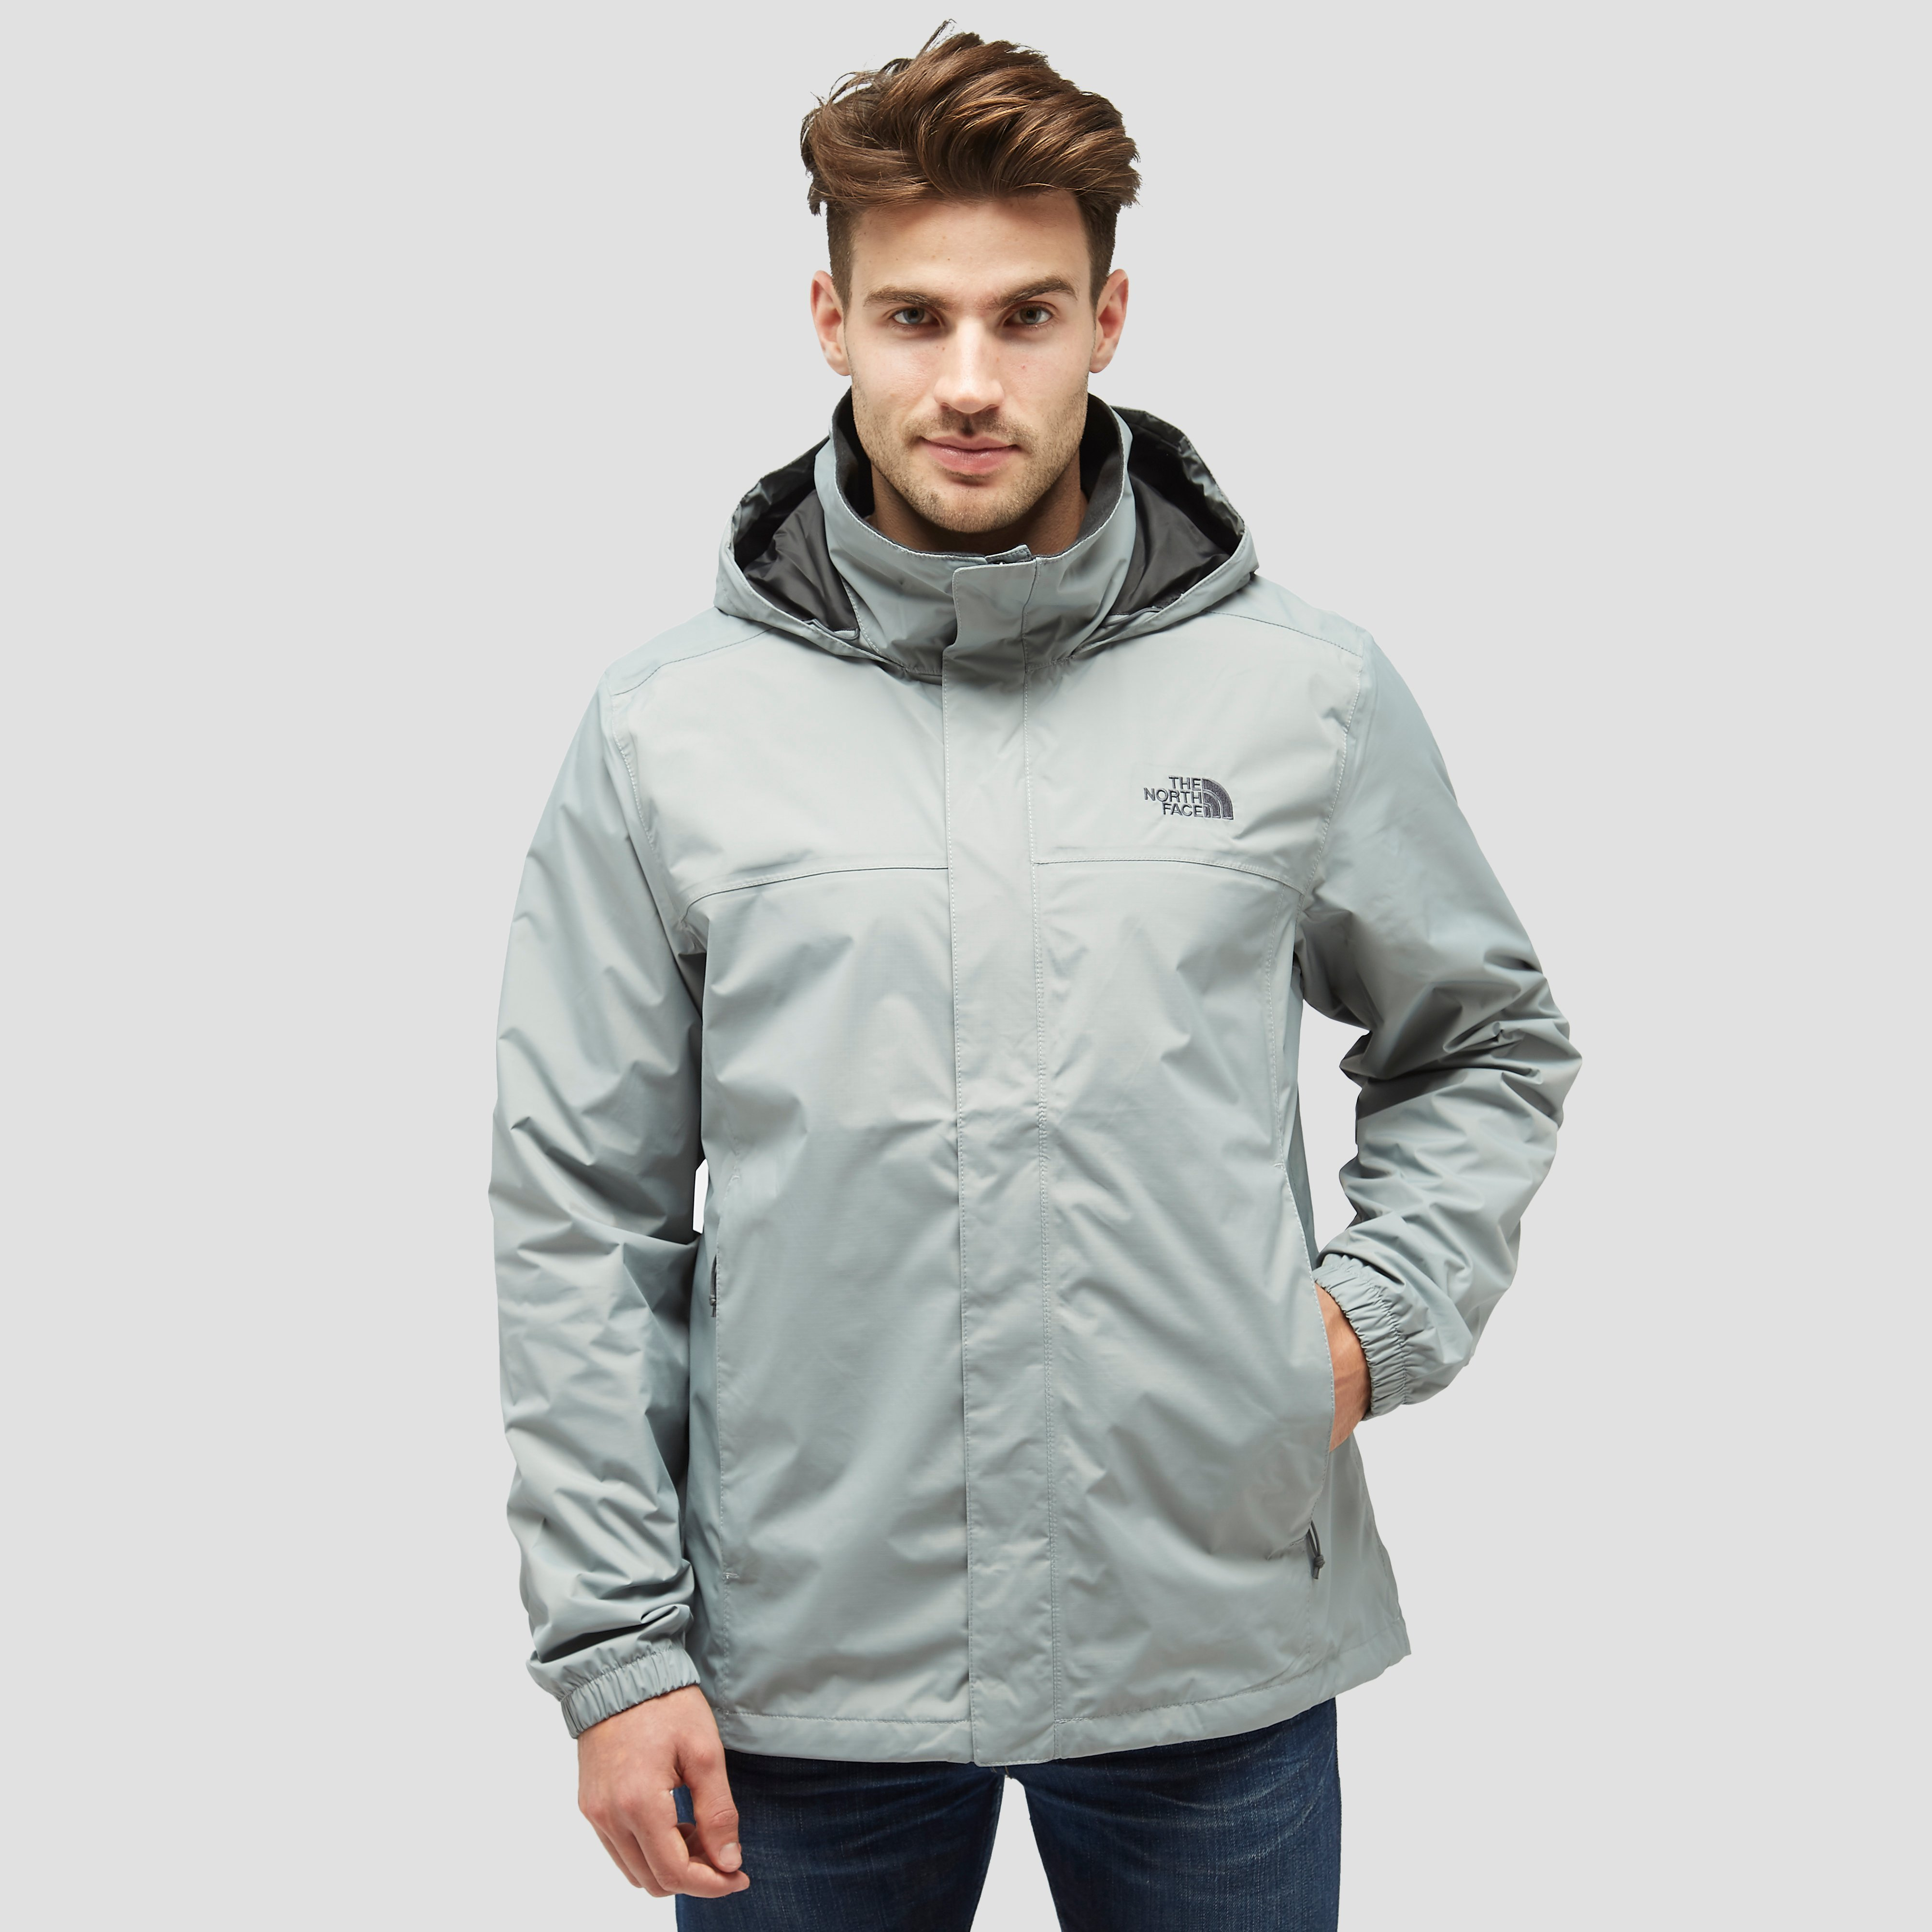 THE NORTH FACE RESOLVE 2 OUTDOOR JAS GRIJS HEREN